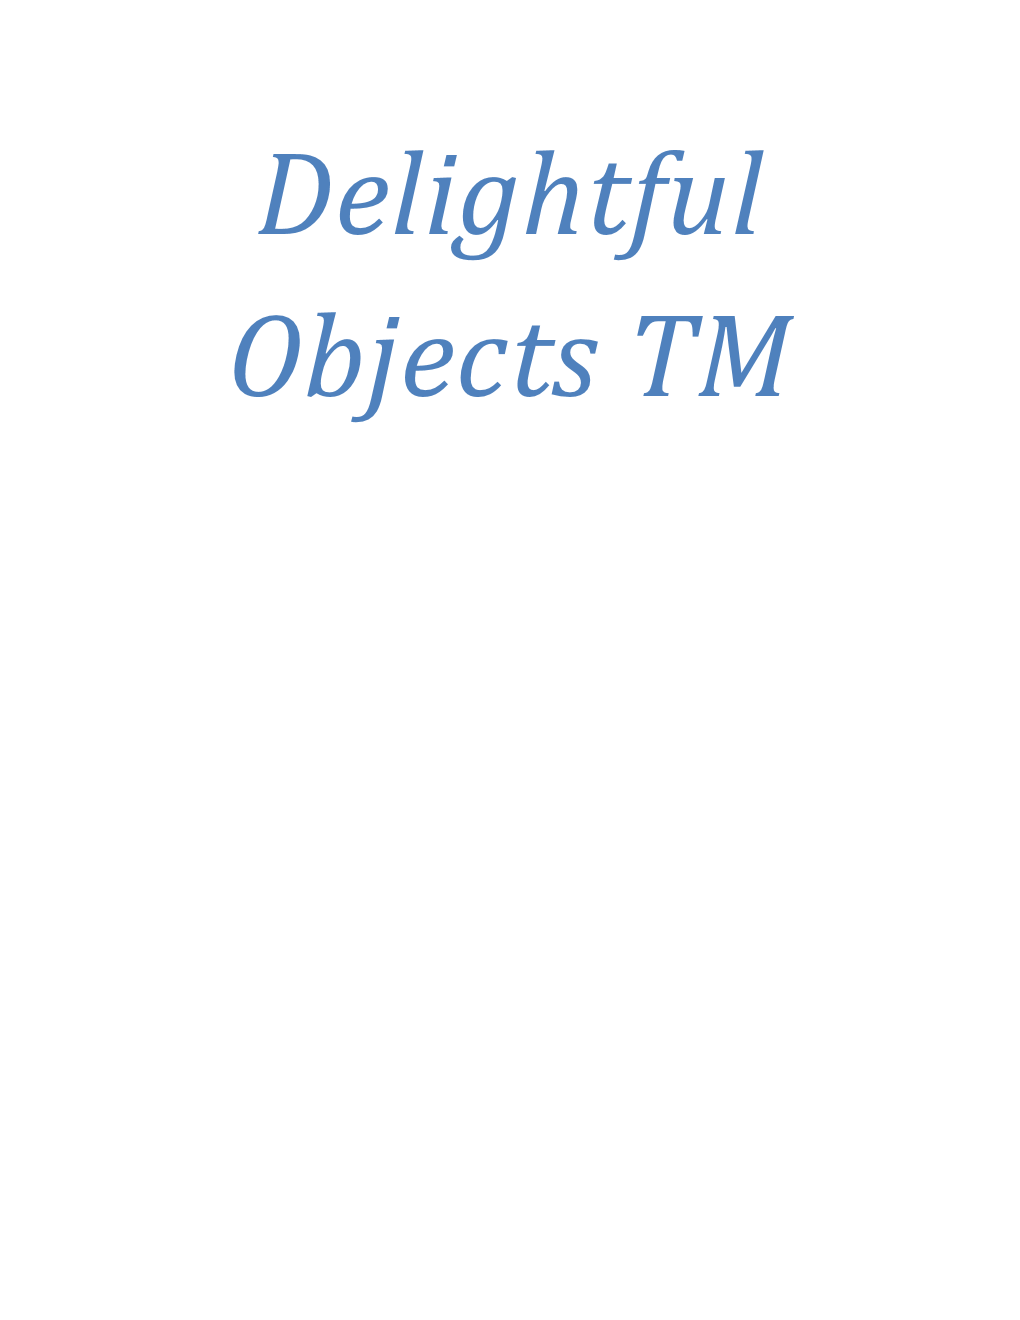 Delightful Objects